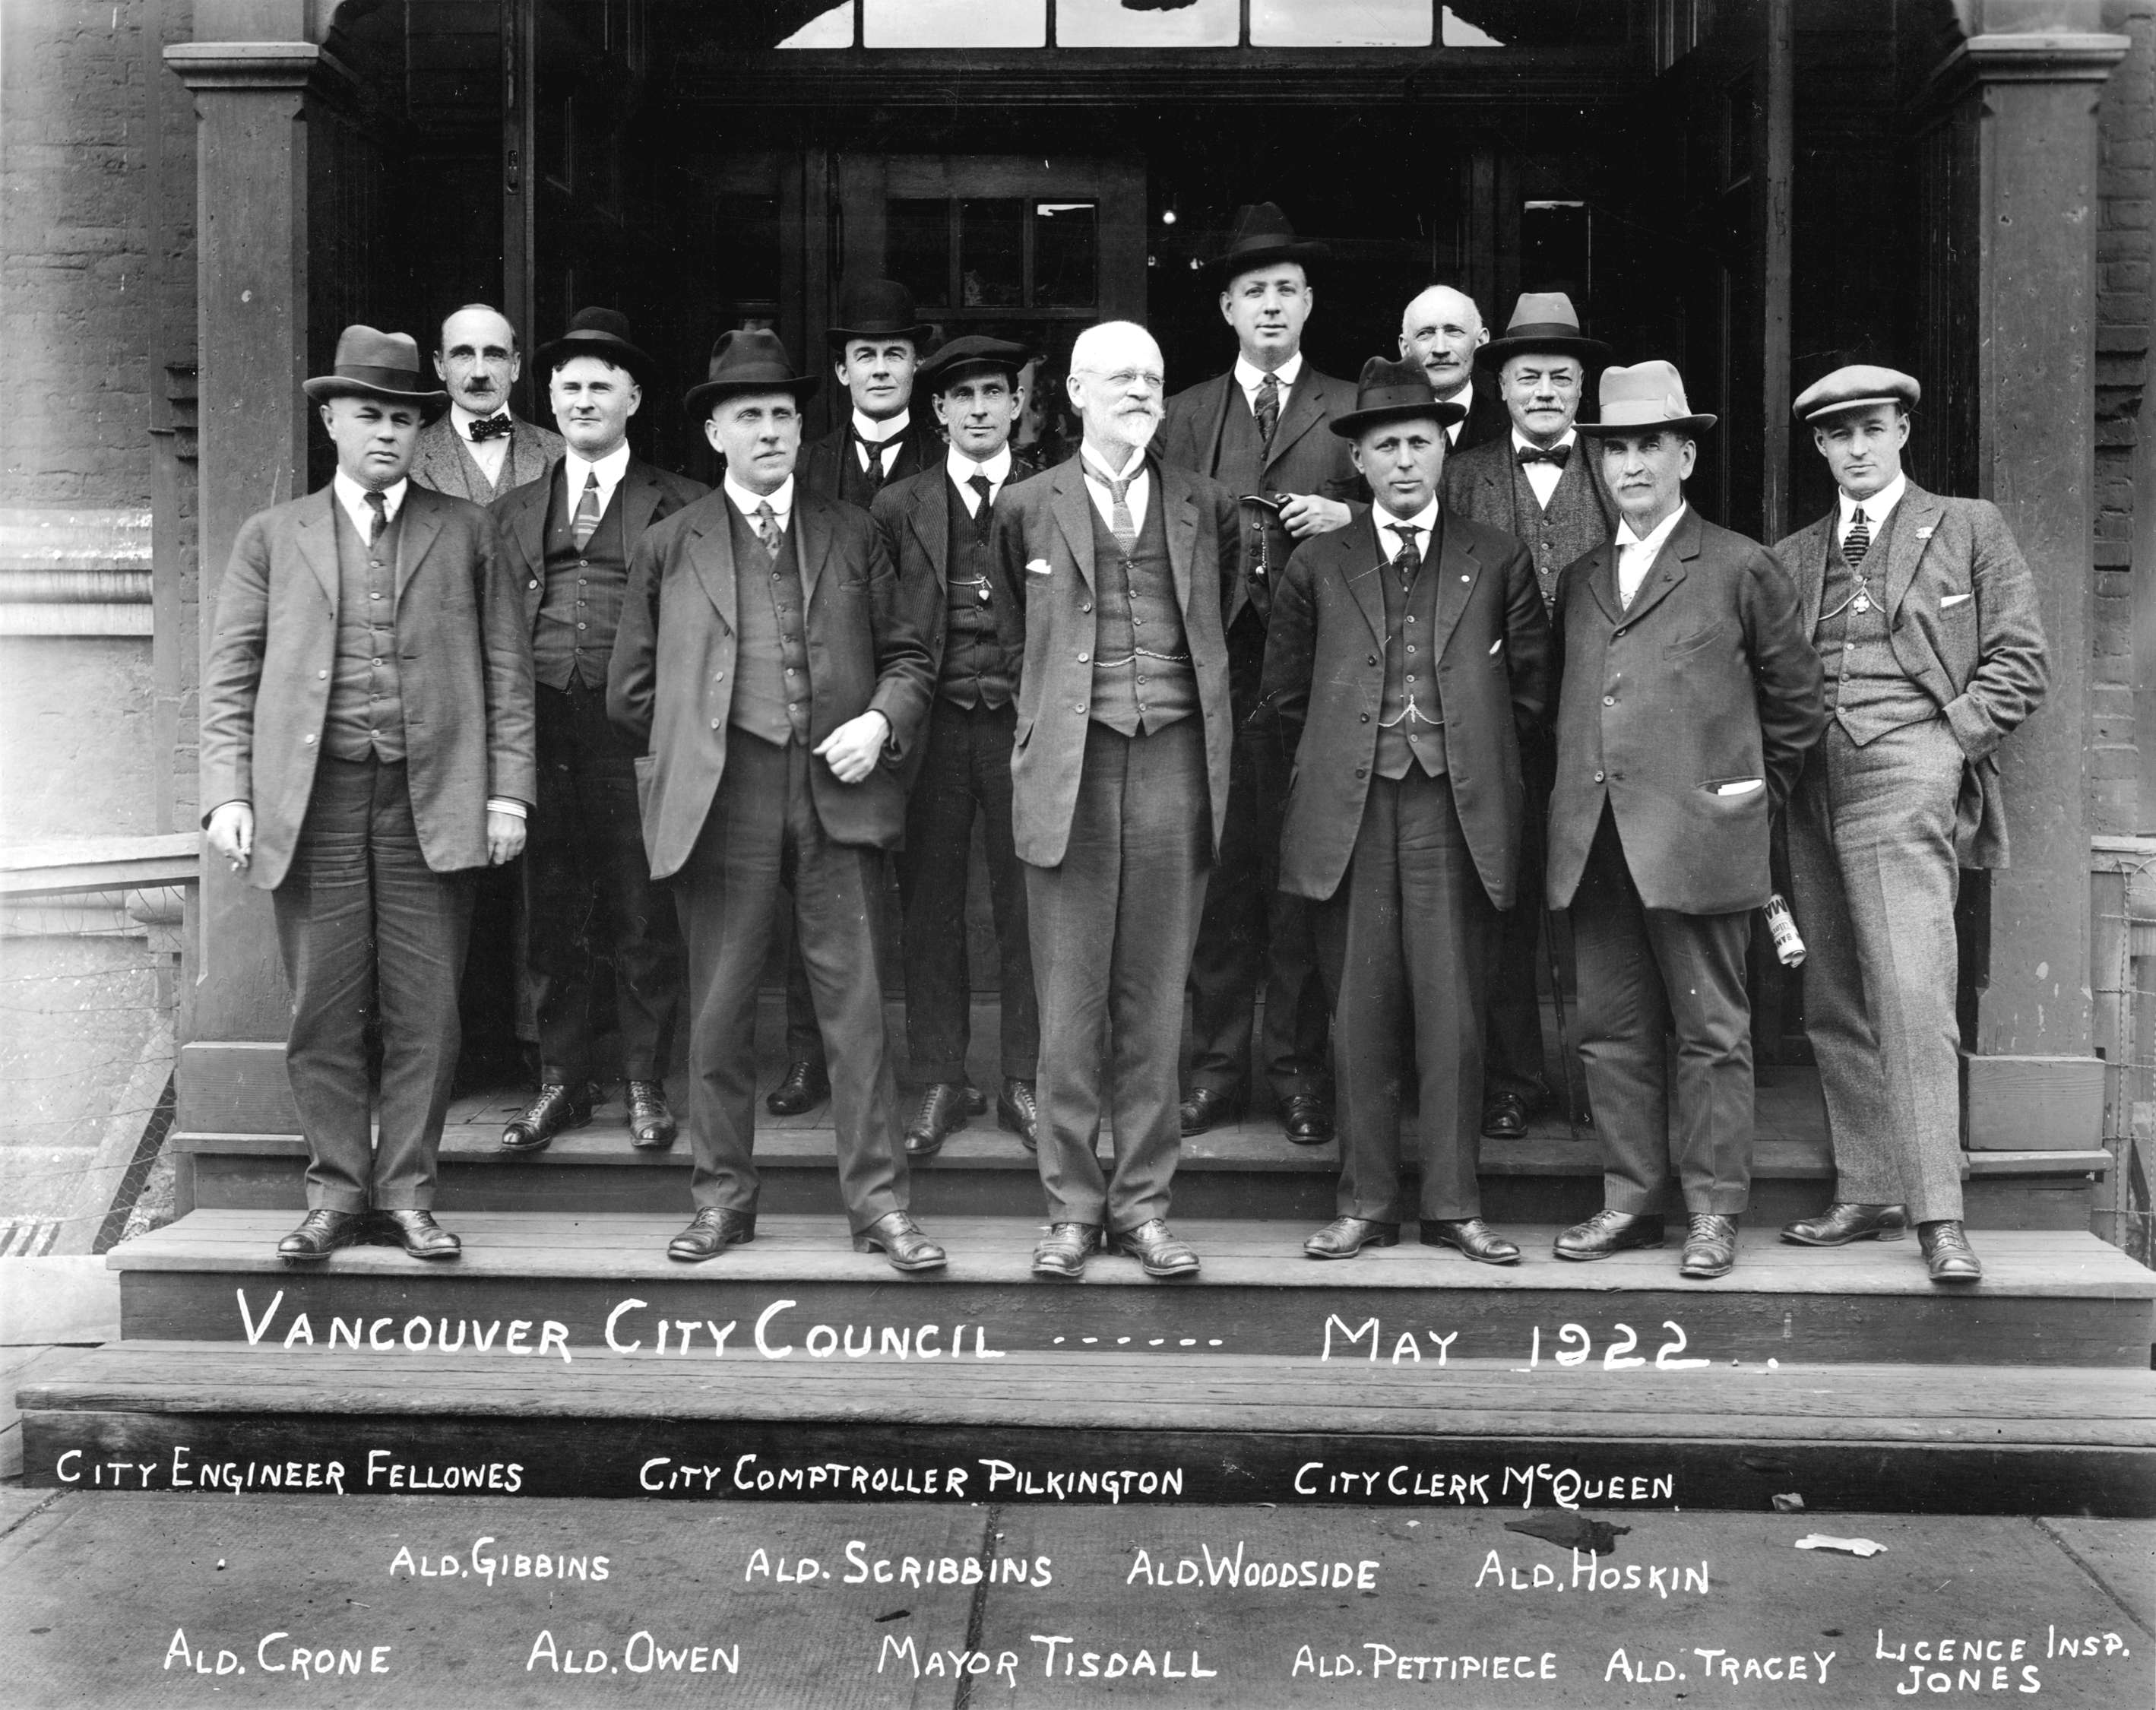 https://i2.wp.com/upload.wikimedia.org/wikipedia/commons/8/80/Vancouver_City_Council_1922.jpg